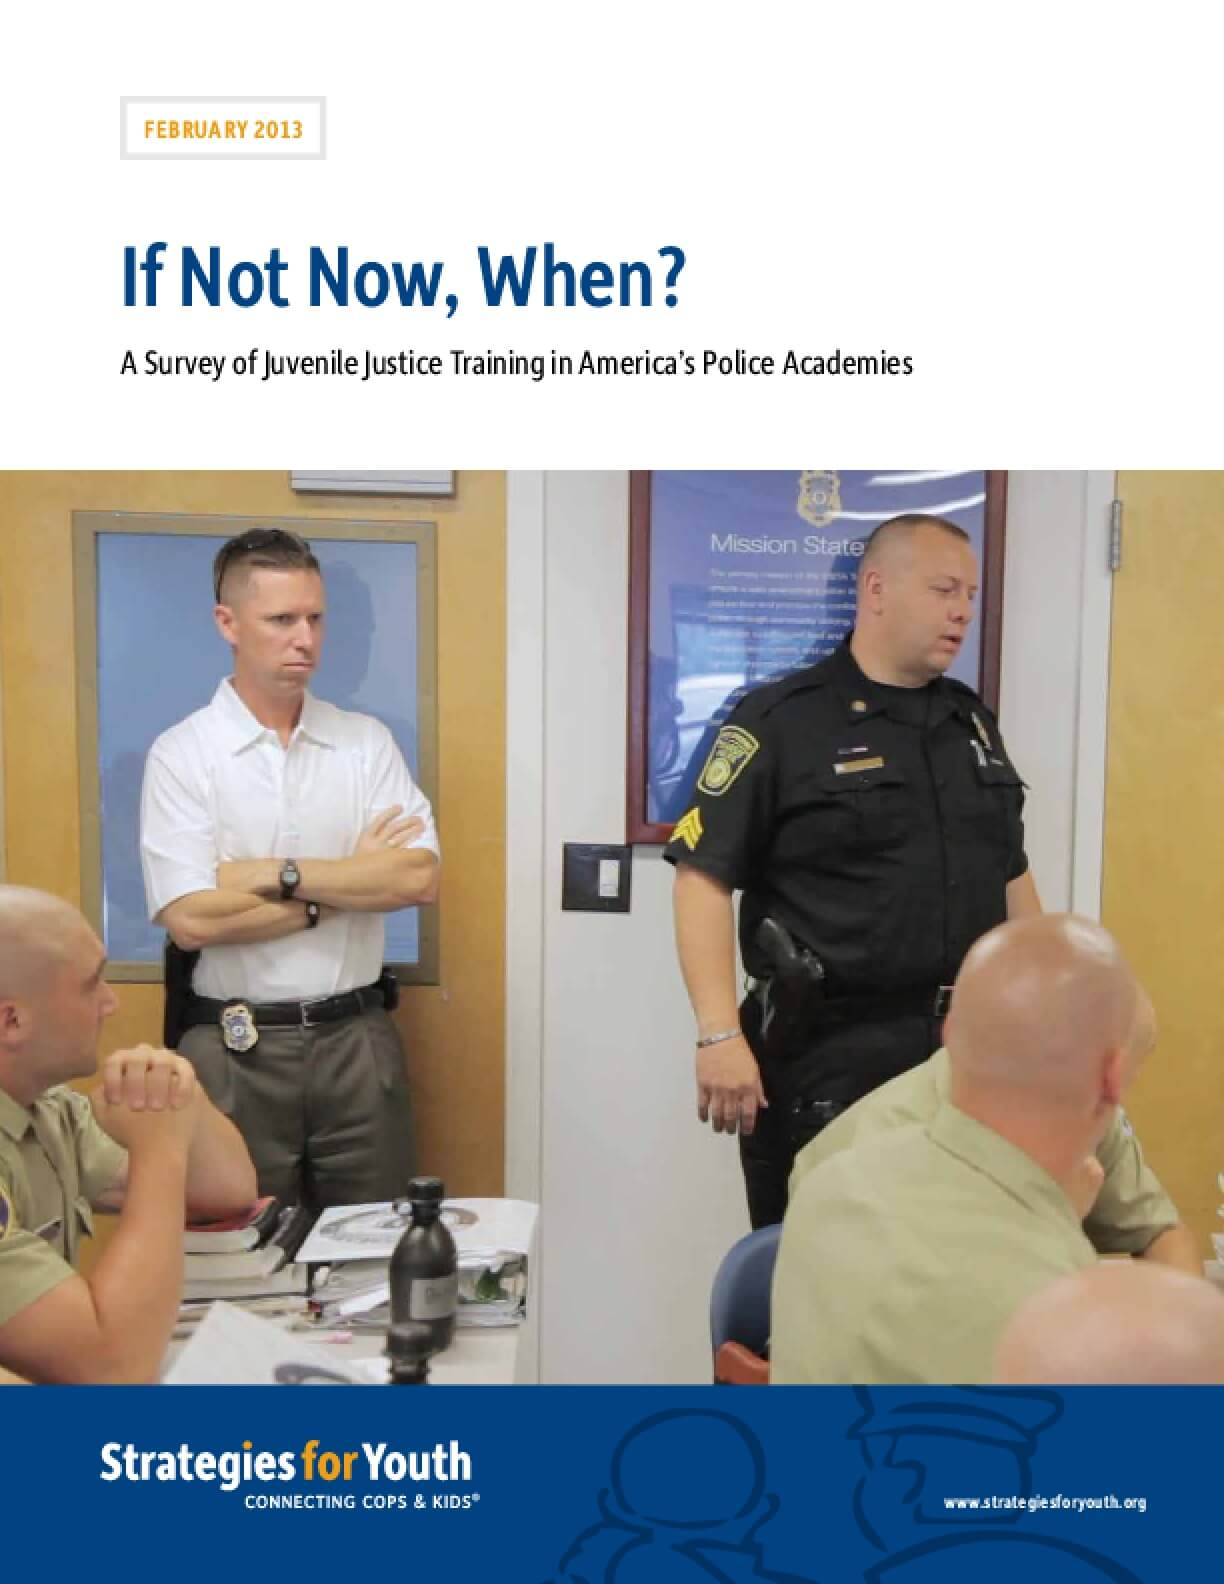 If Not Now, When? A Survey of Juvenile Justice Training in America's Police Academies